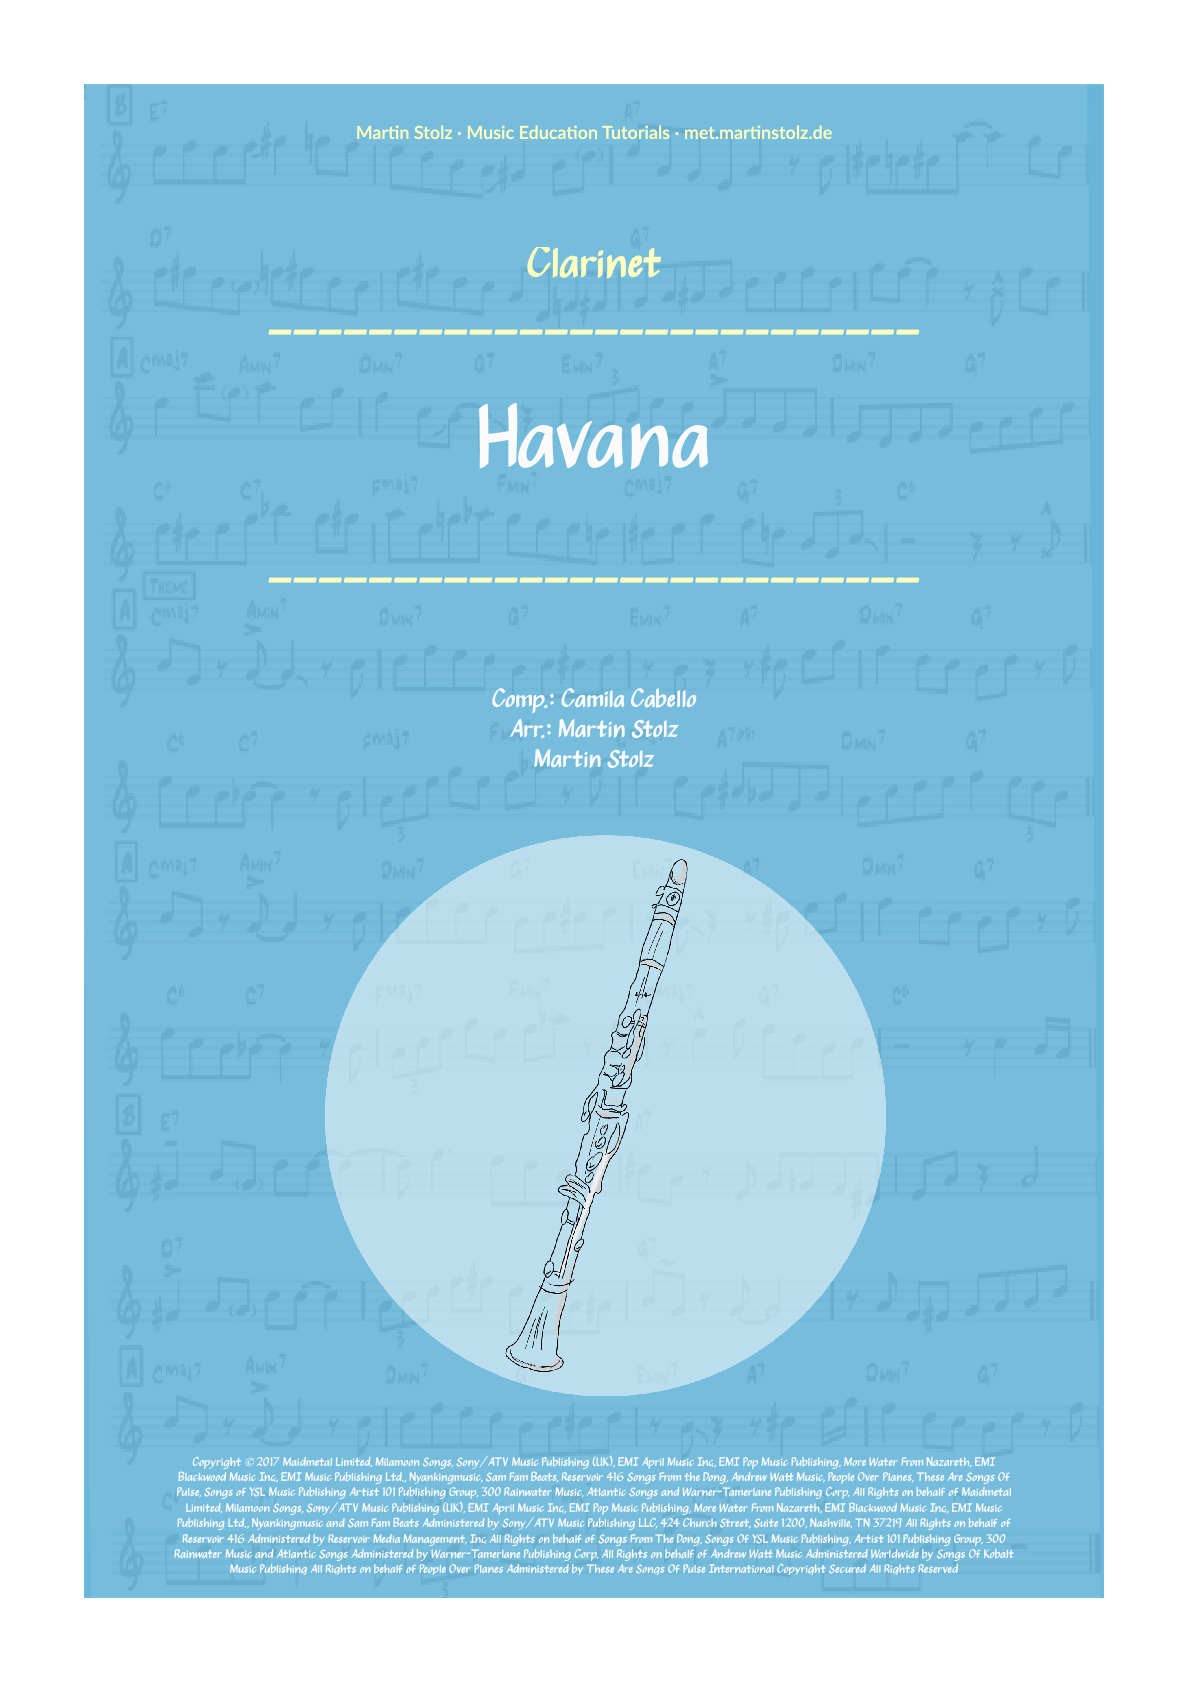 """Havana"" by Camila Cabello for clarinet including play-along (backing track)"